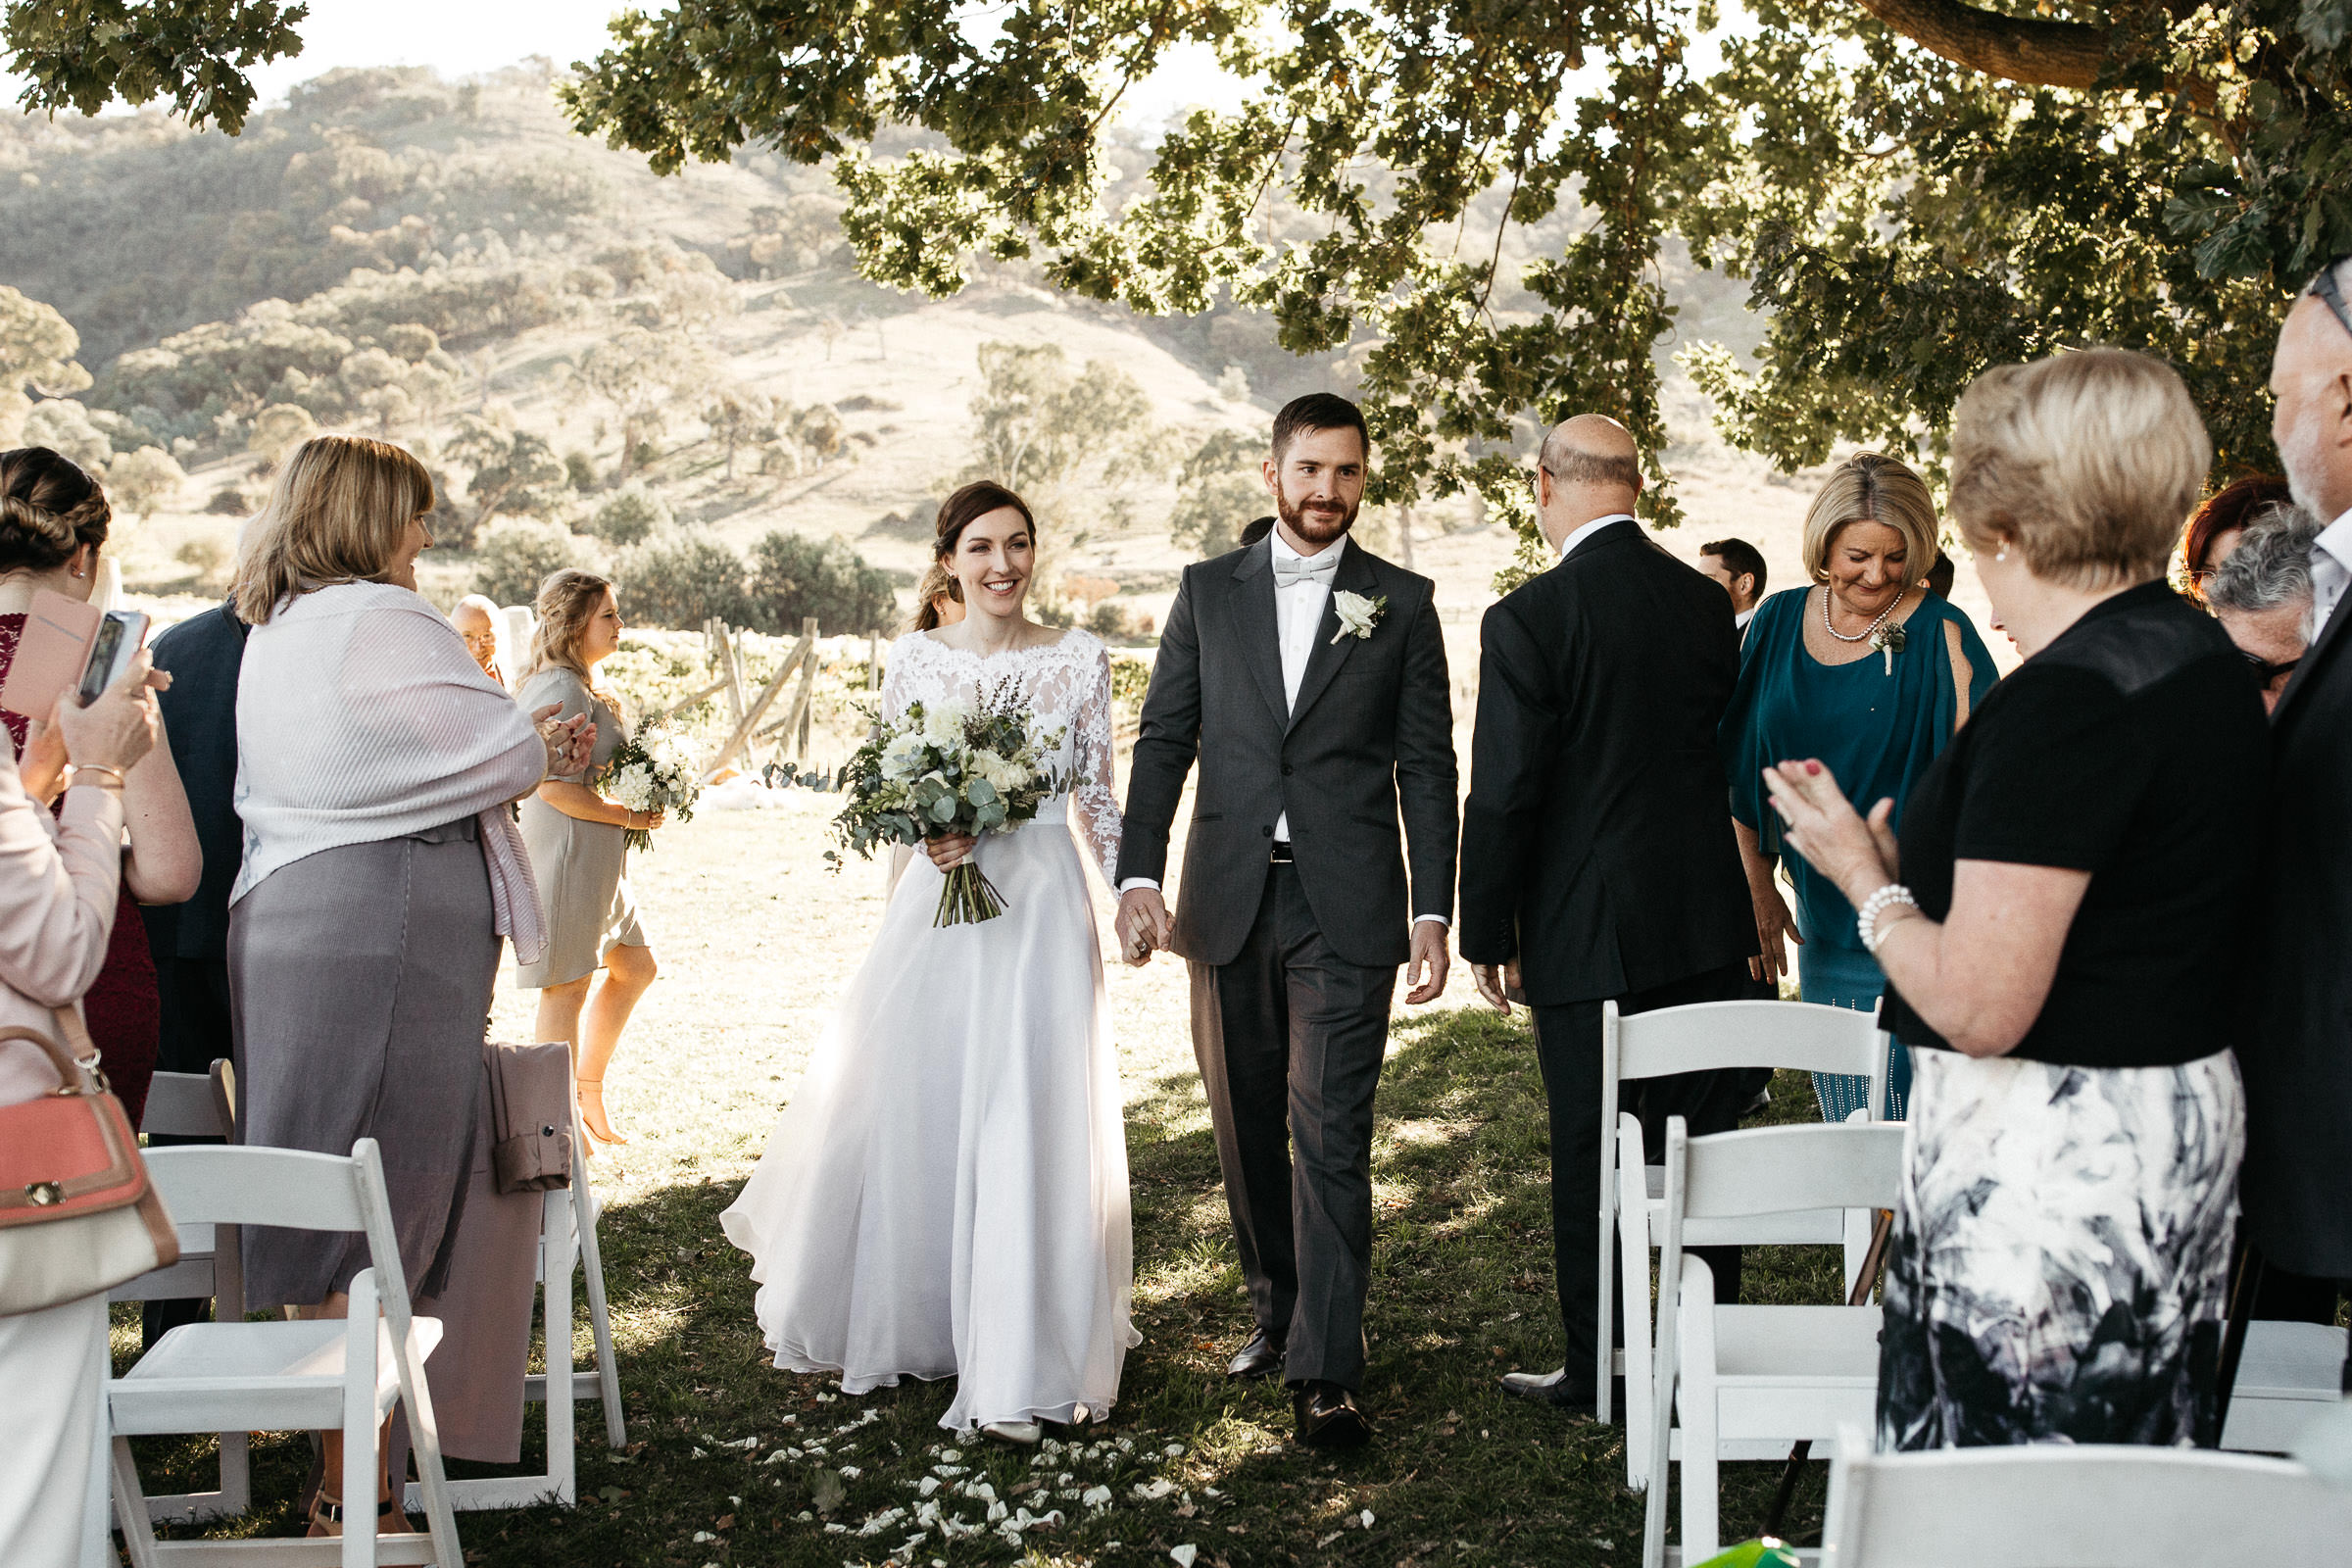 Bride and Groom in portraits for small wedding in vineyard by top small wedding photographer